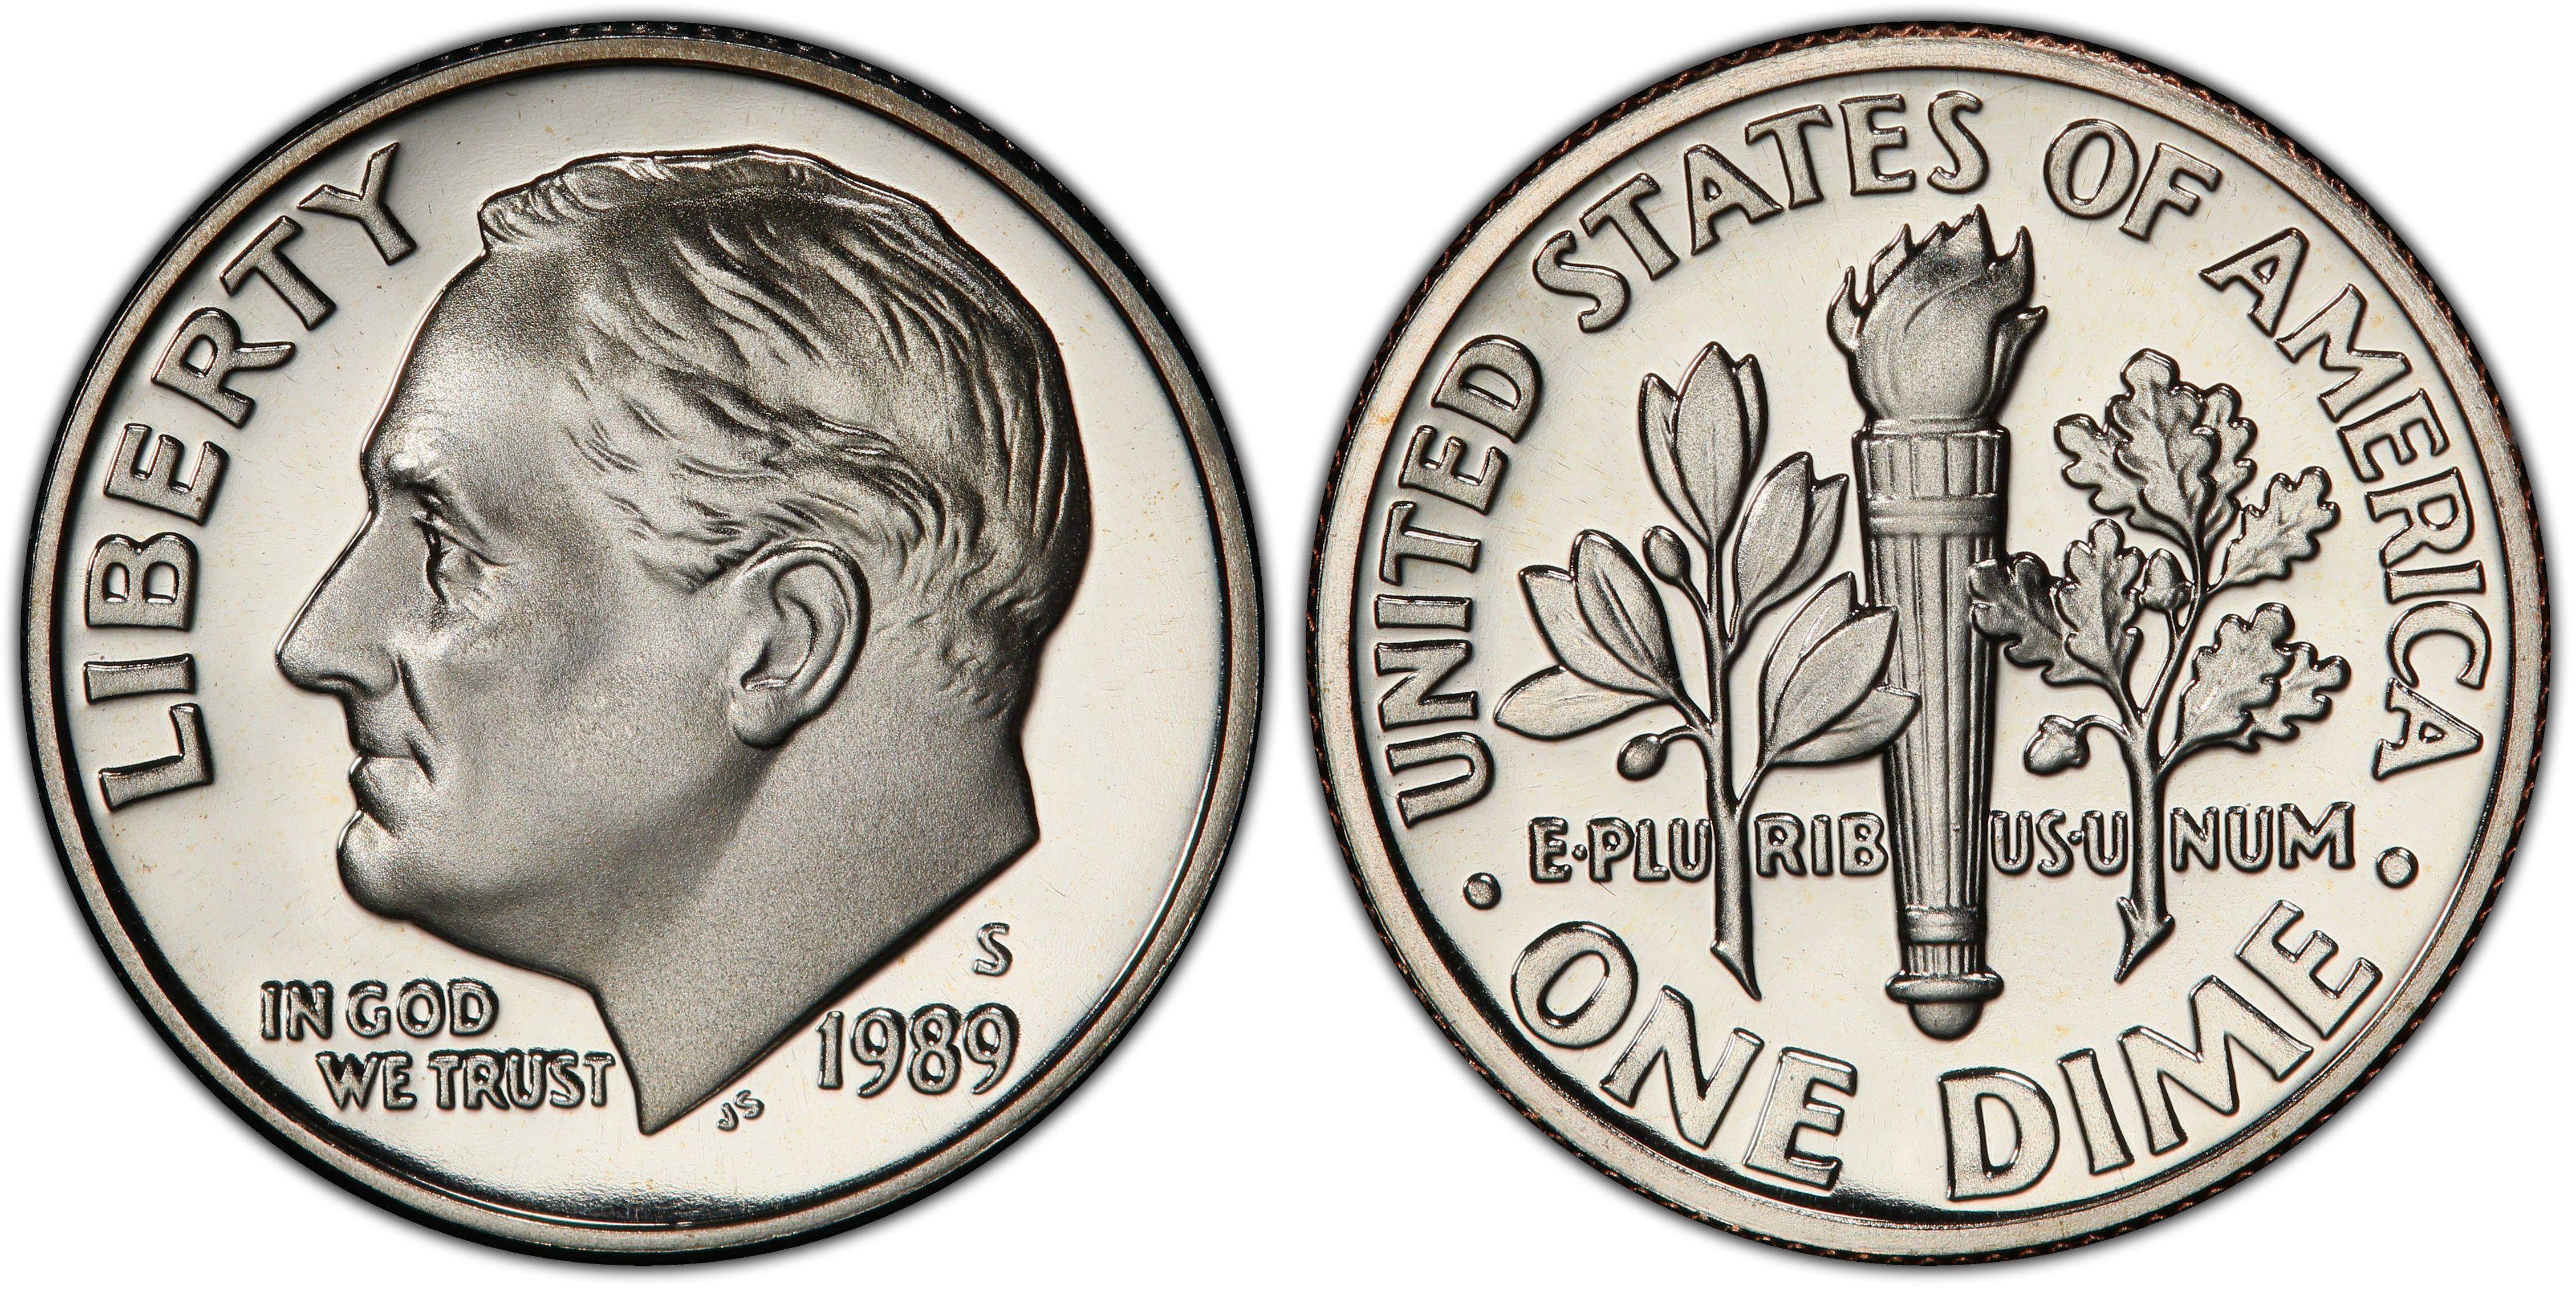 1989 S 10 CENT ROOSEVELT DIME PROOF UNITED STATES COIN VINTAGE COLLECTIBLE